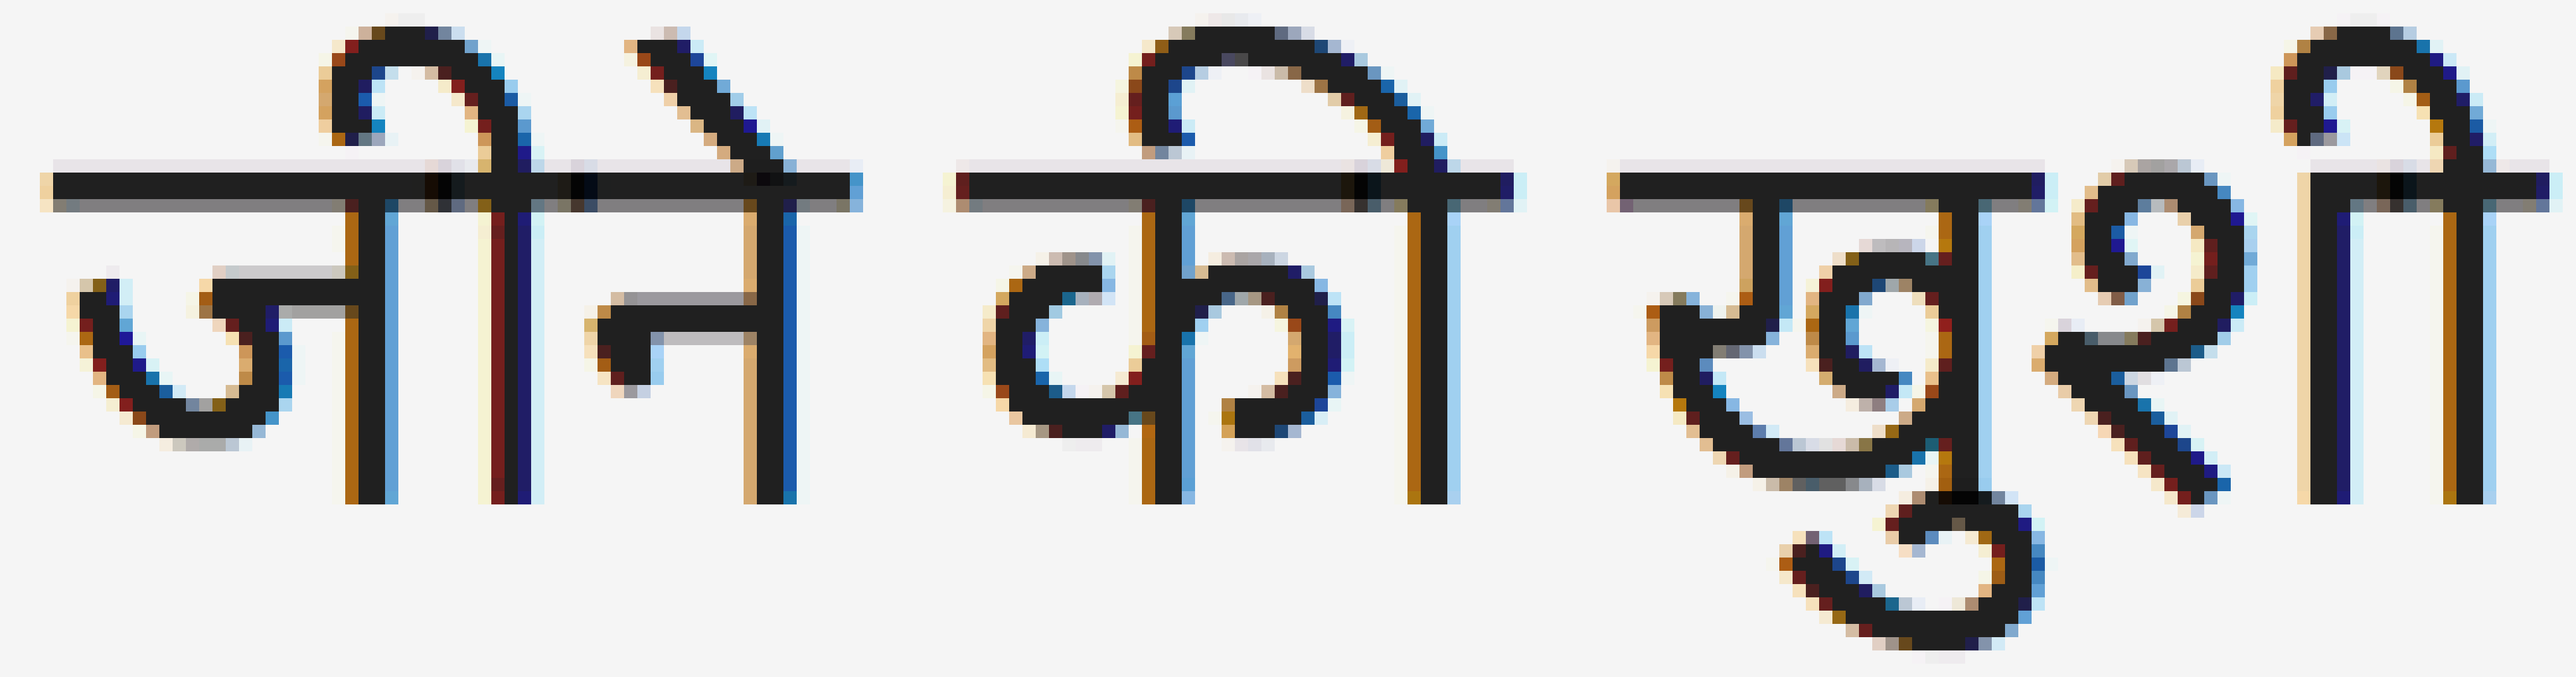 Kohinoor Devanagari (from Google Translate)